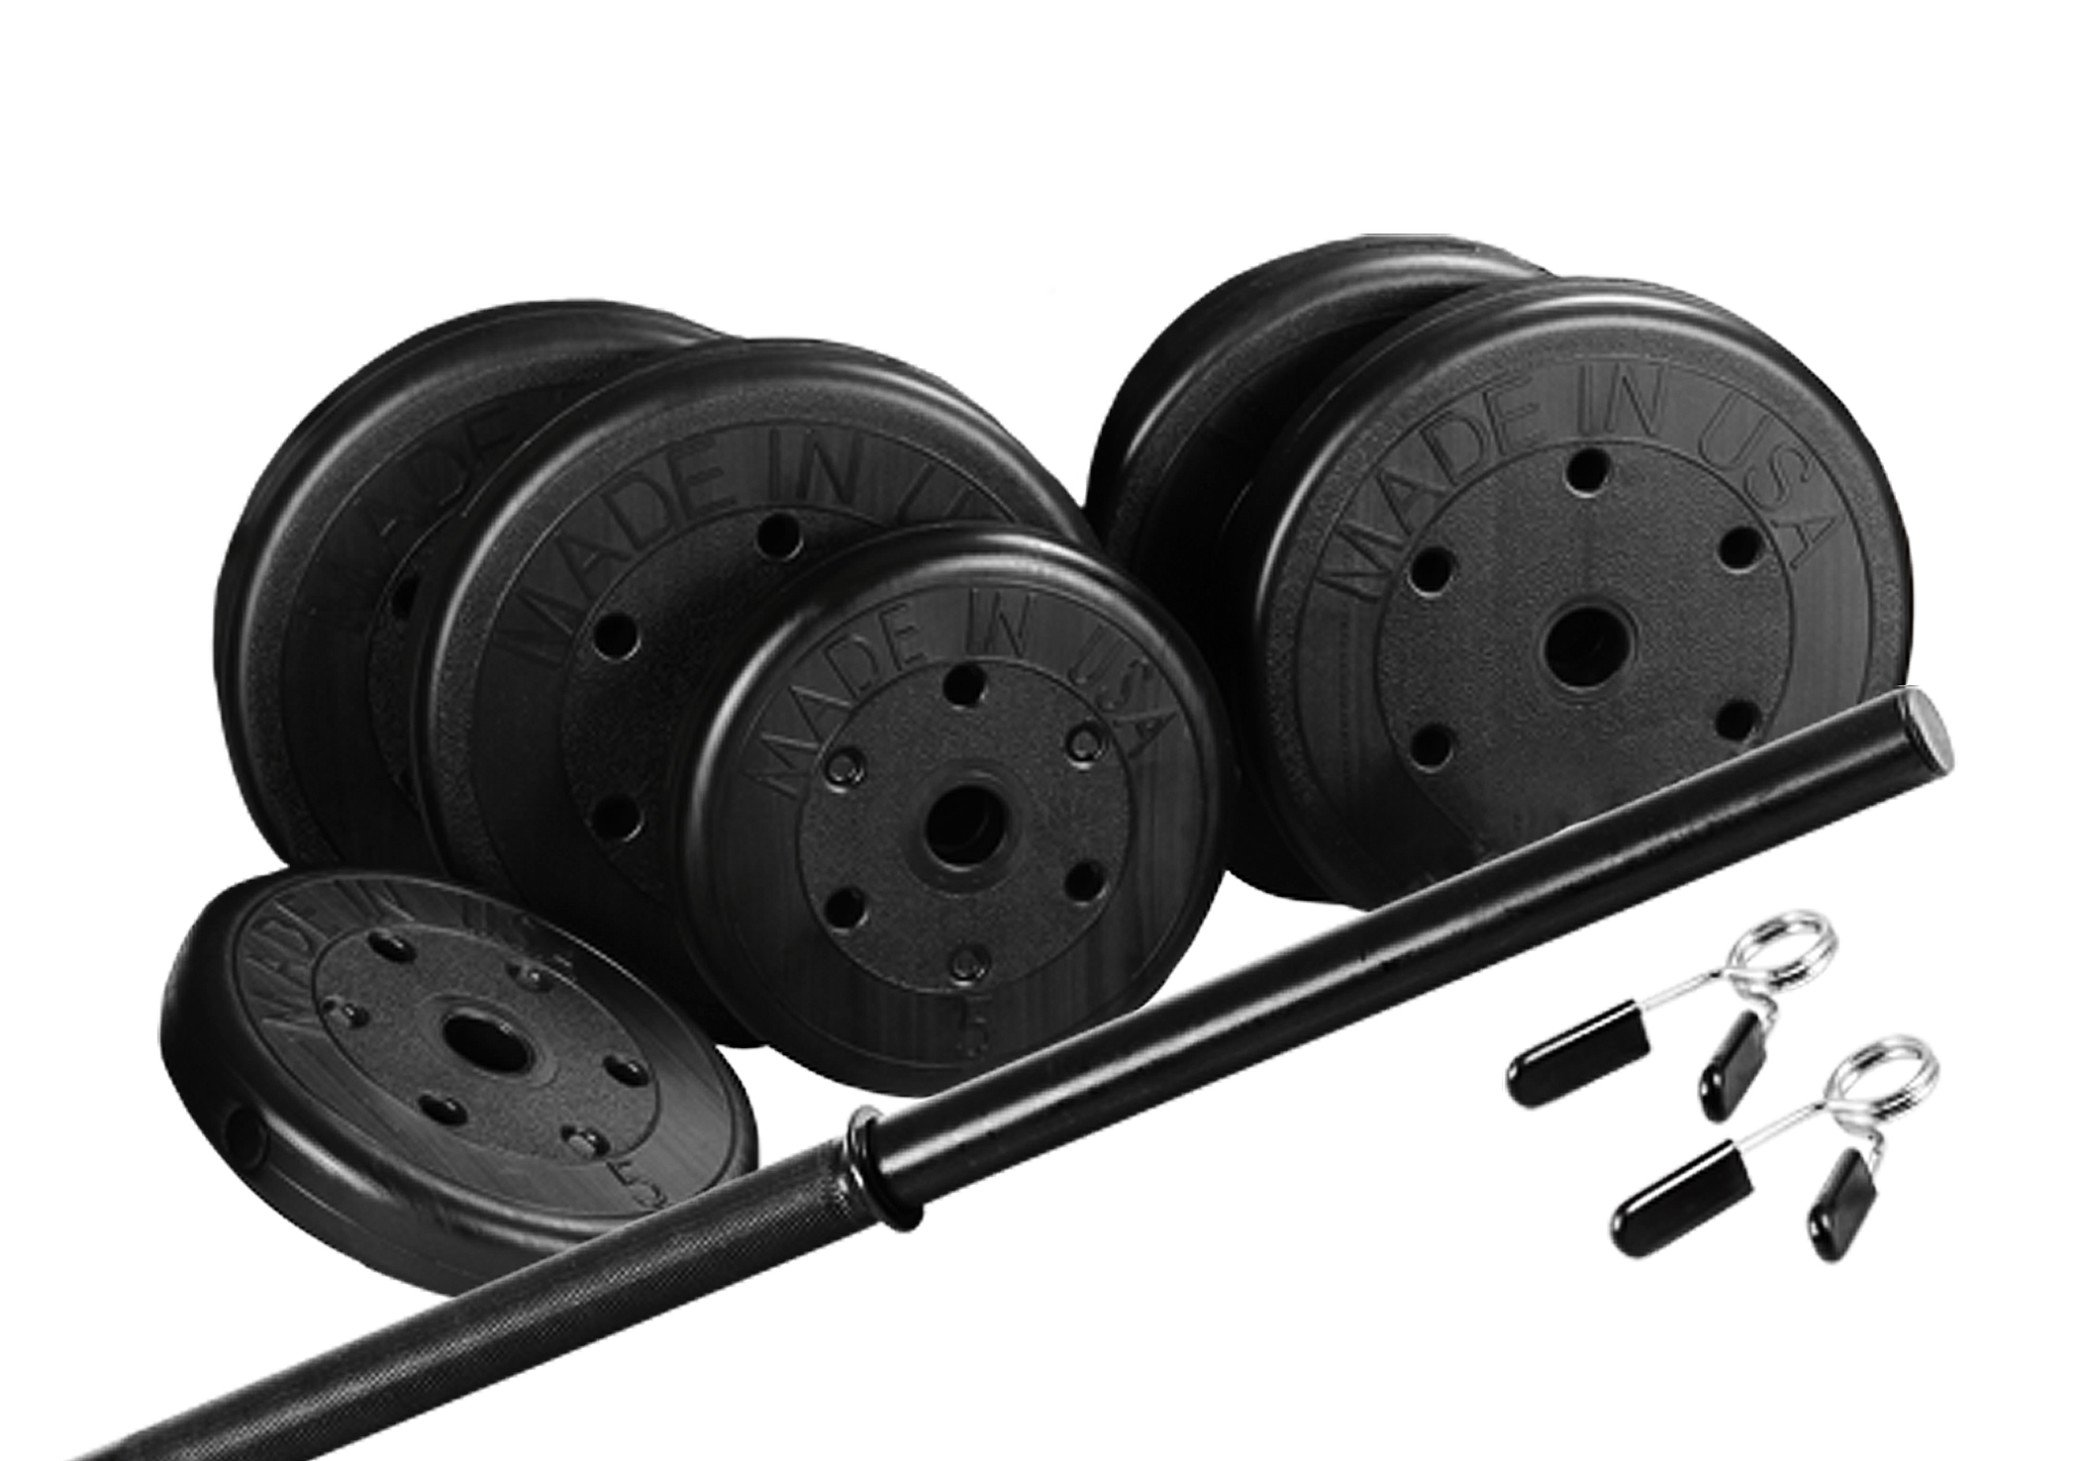 US Weight Duracast 55 lb. Barbell Weight Set with Two 5 lb. Weights, Four 10 lb. Weights, One 4 lb. Two-Piece Threaded Barbell Bar, Two Locking Spring Clips by US Weight